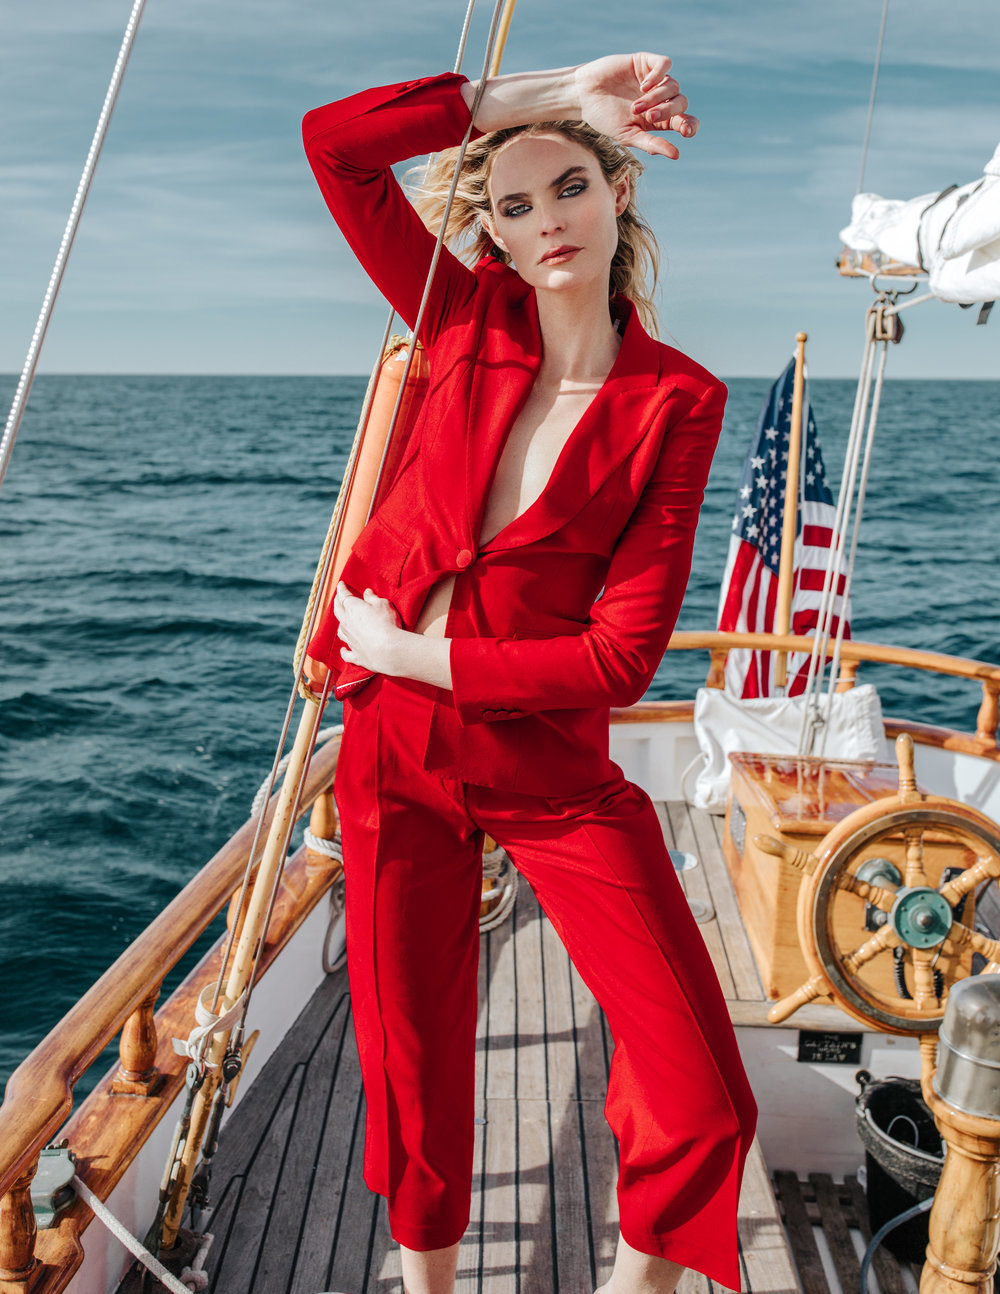 Sailing Editorials (30 of 36).jpg